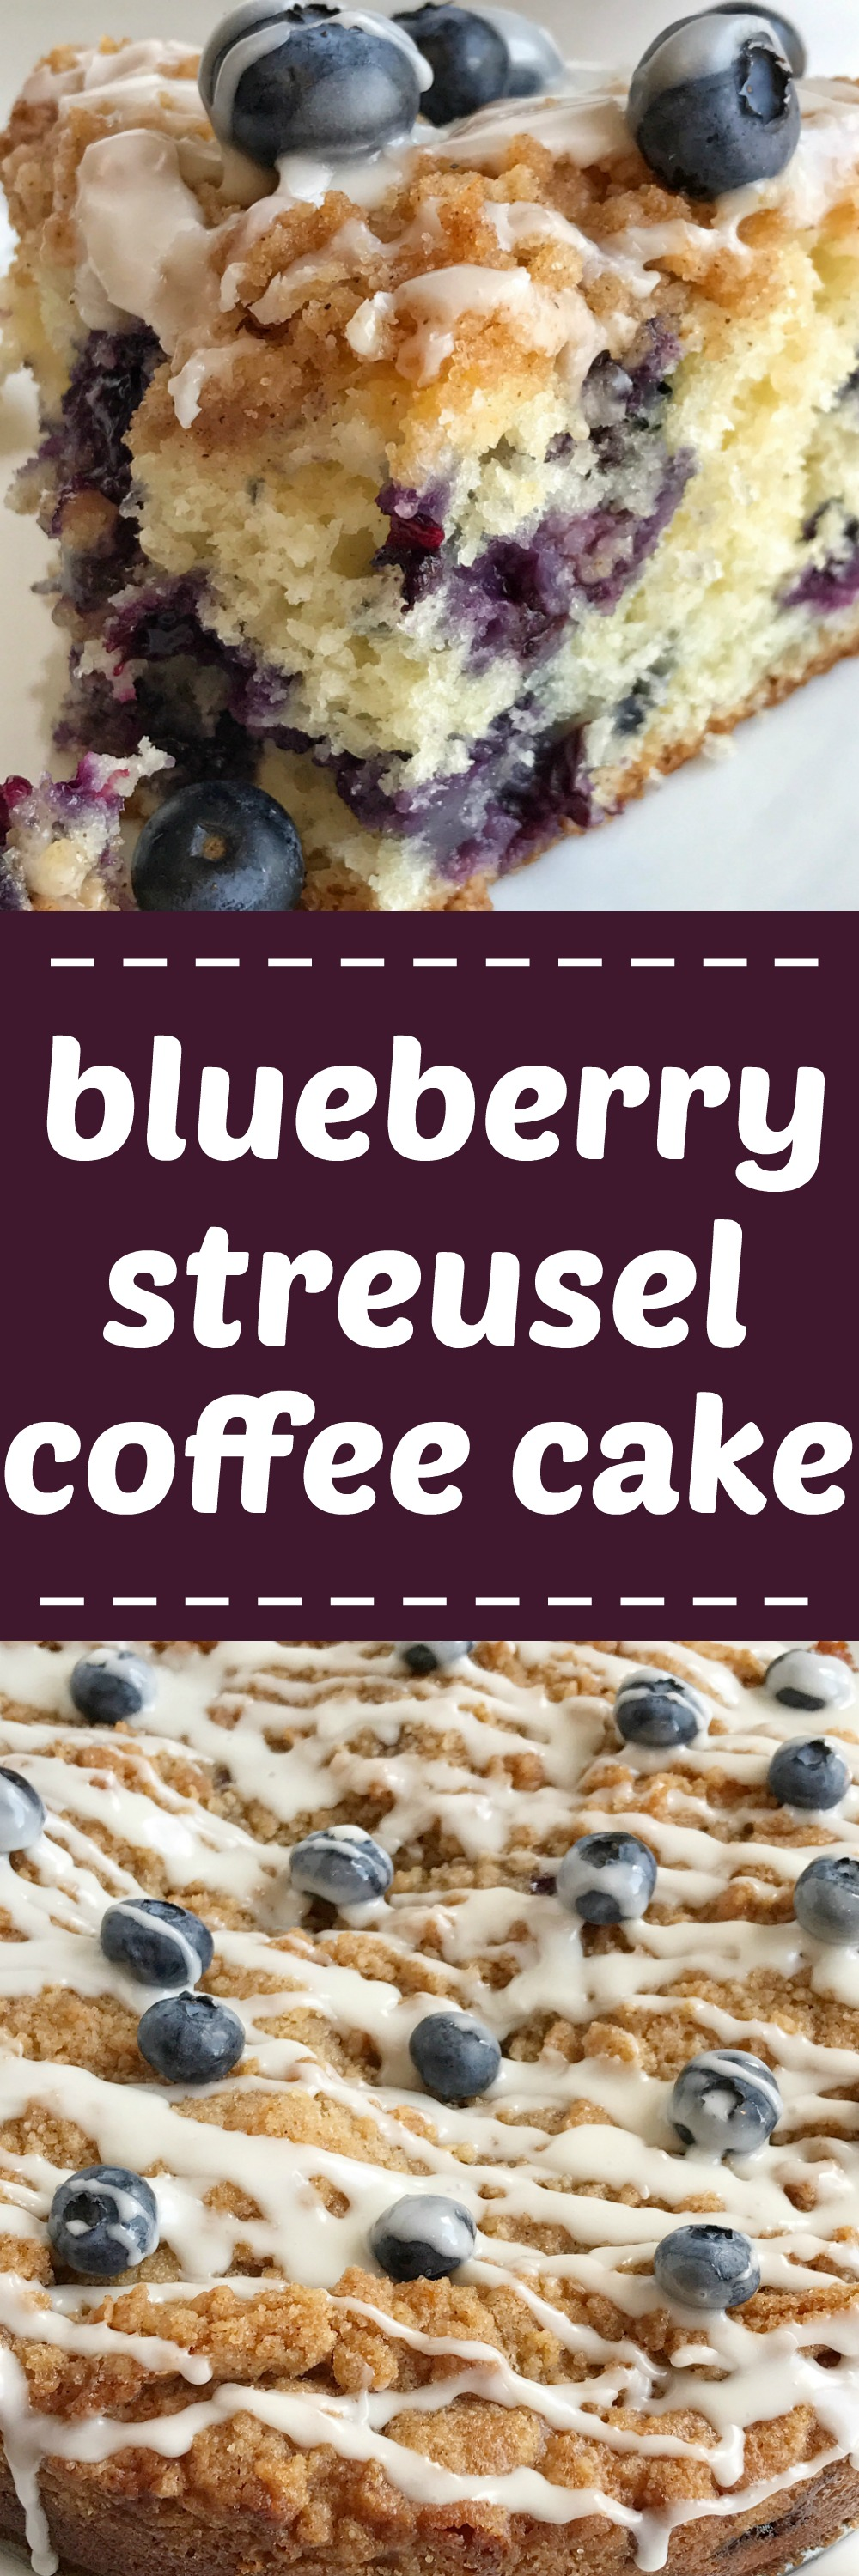 Moist Blueberry Coffee Cake Streusel Topping